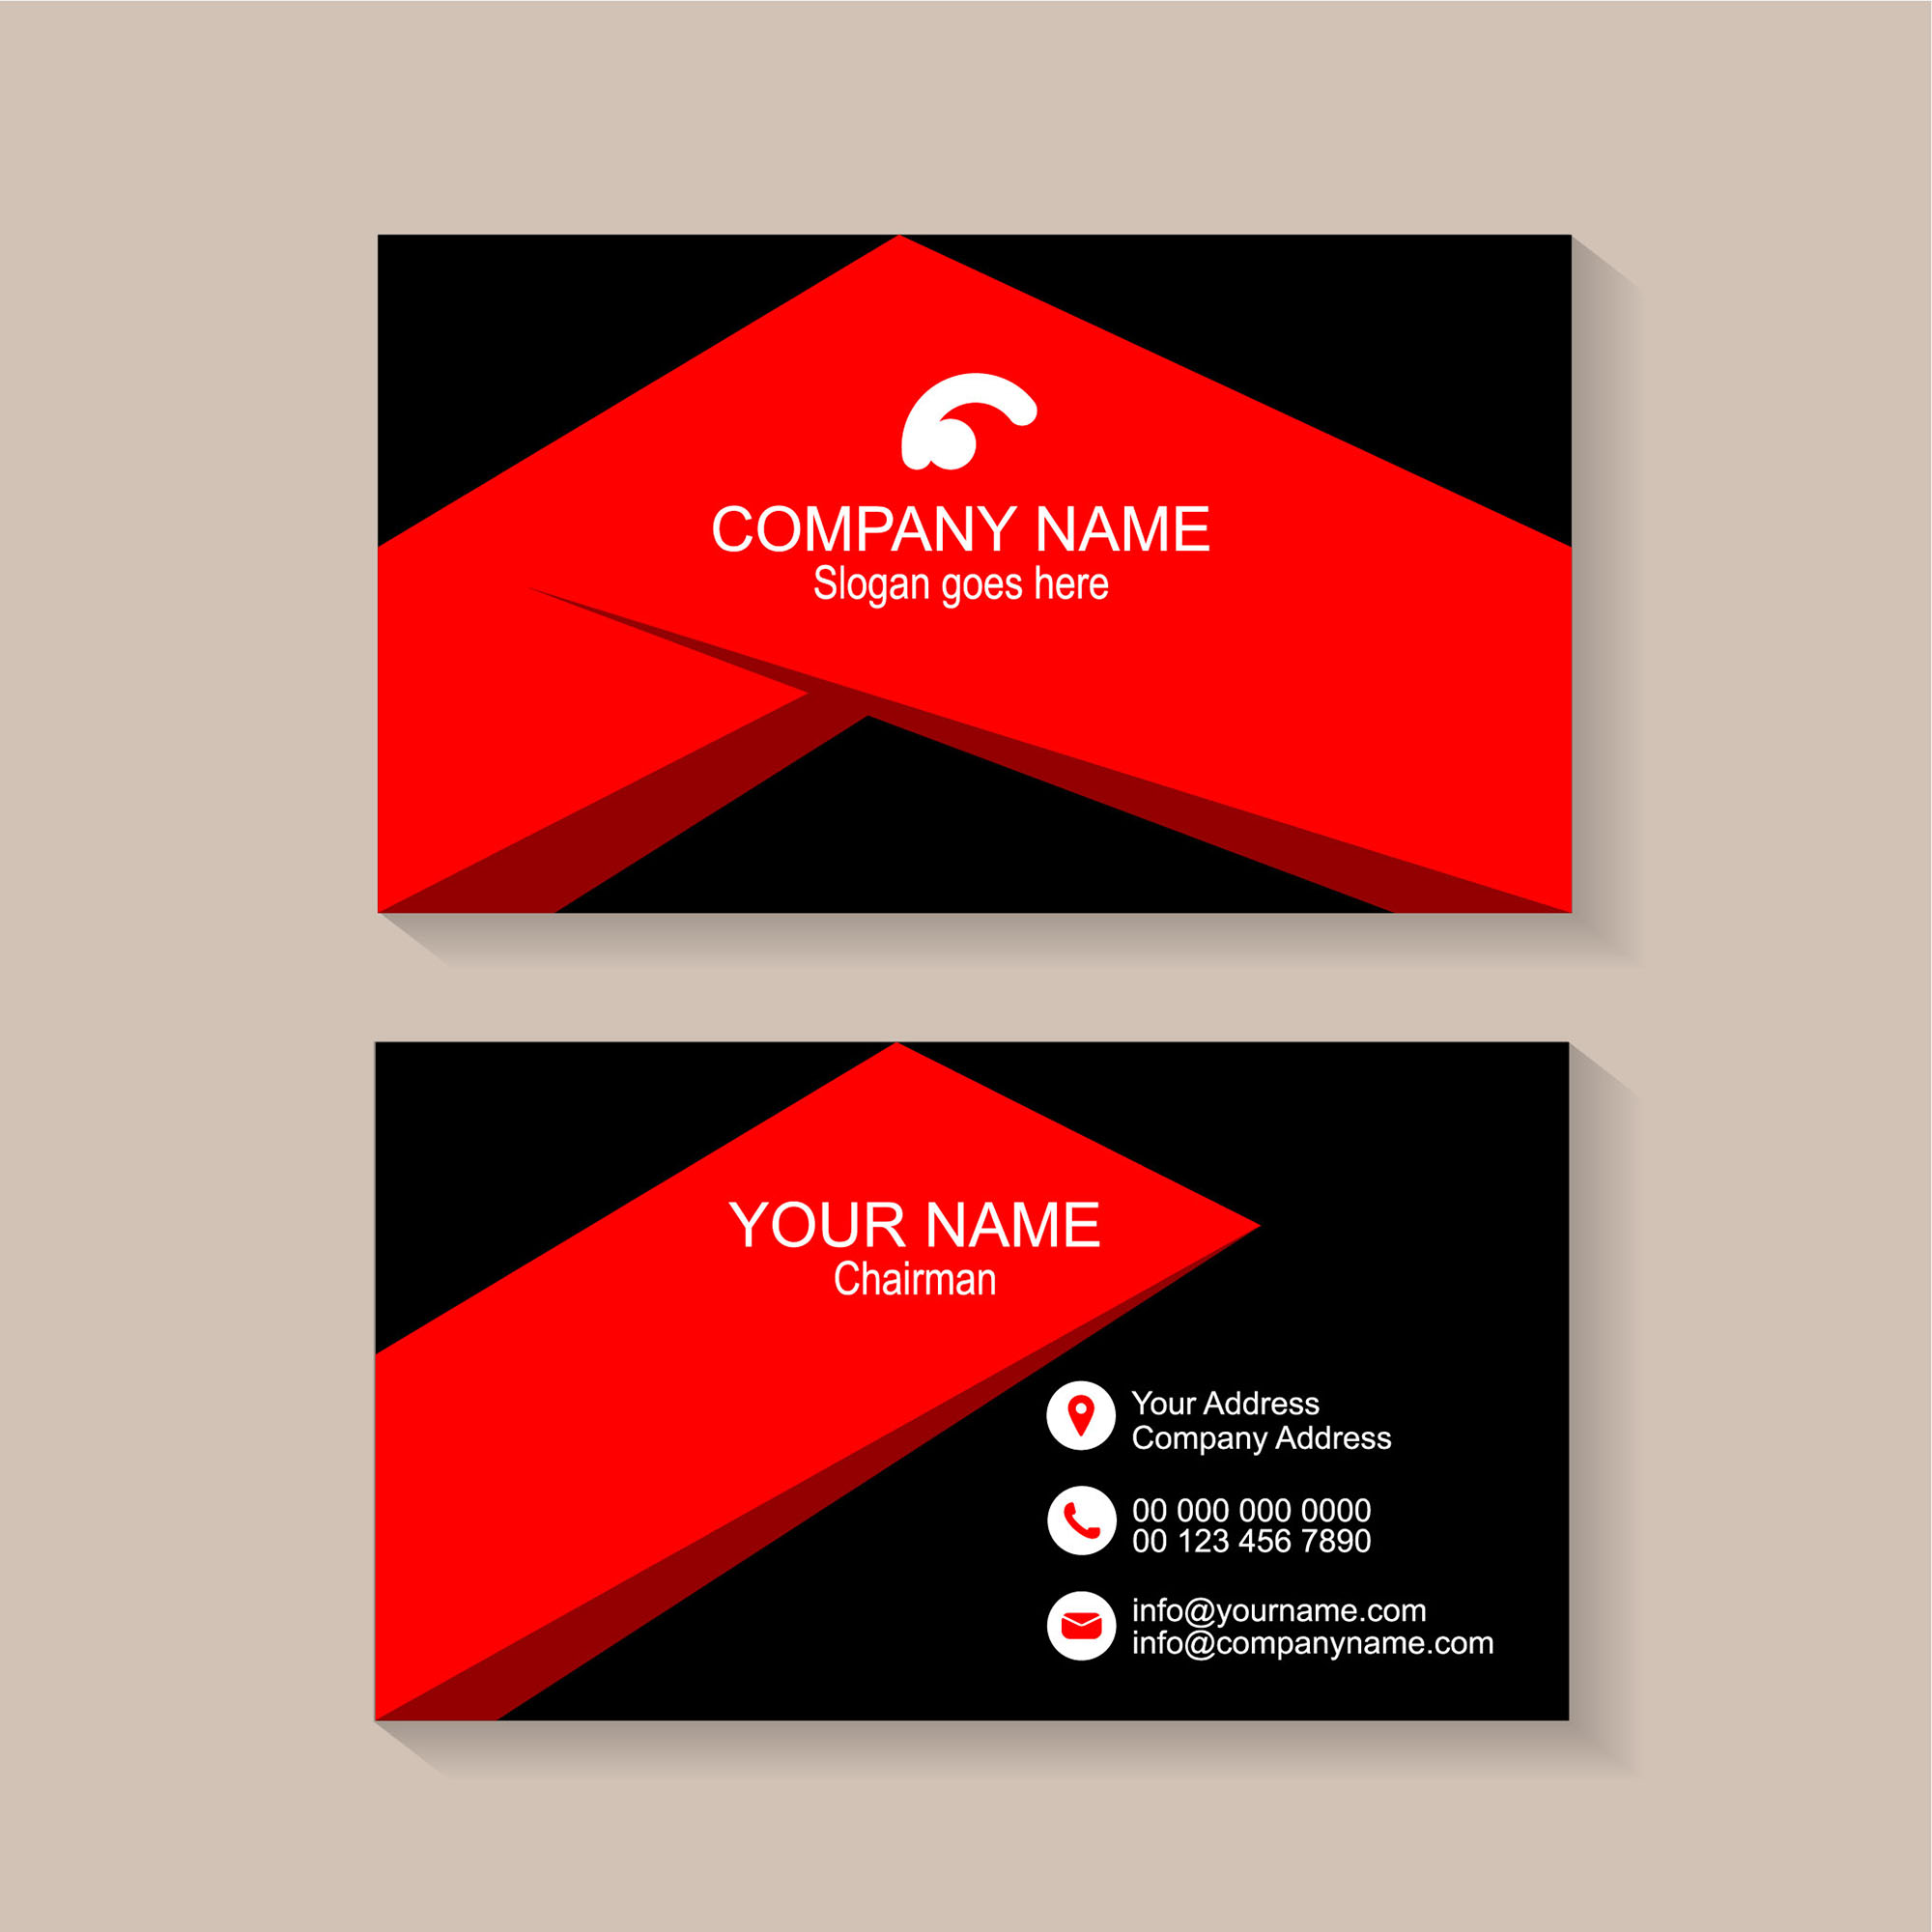 Business card template design free download wisxi business card business cards business card design business card template design templates flashek Choice Image